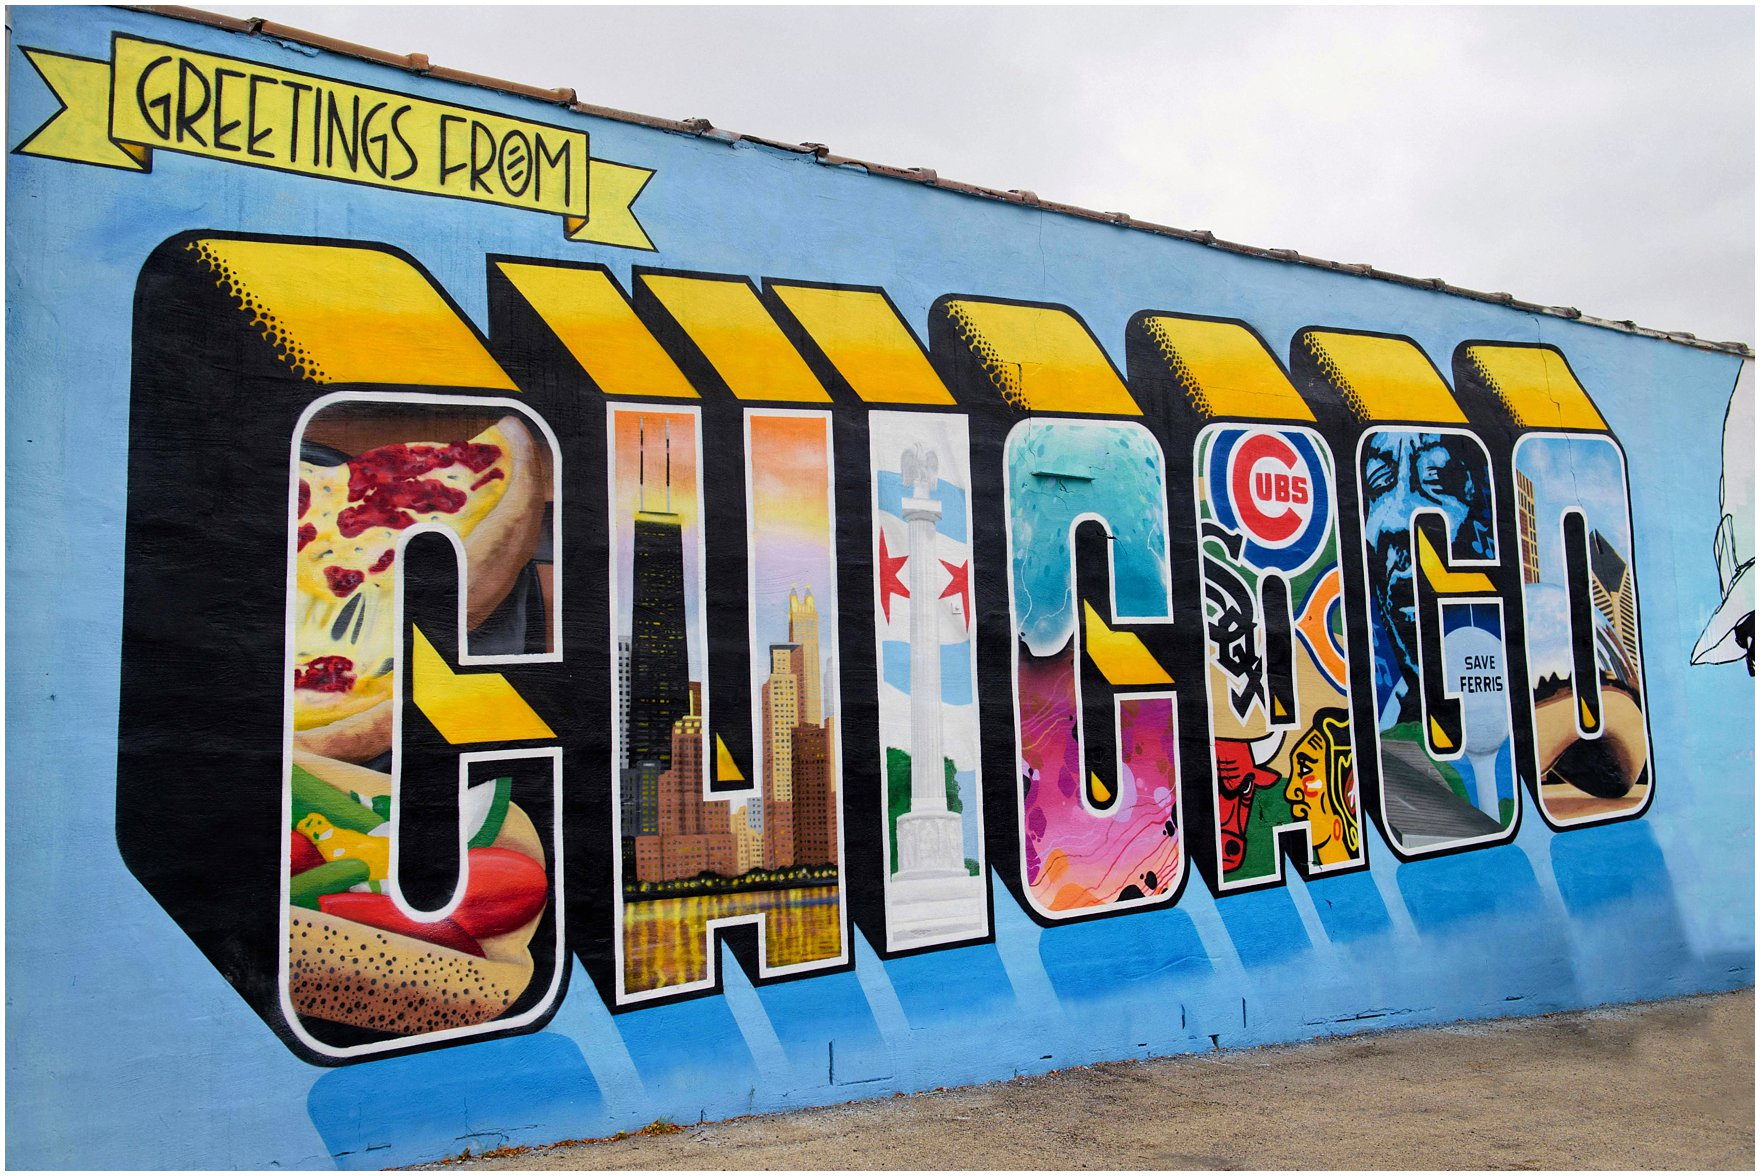 28 greetings from chicago il mural greetings from for Mural in chicago illinois